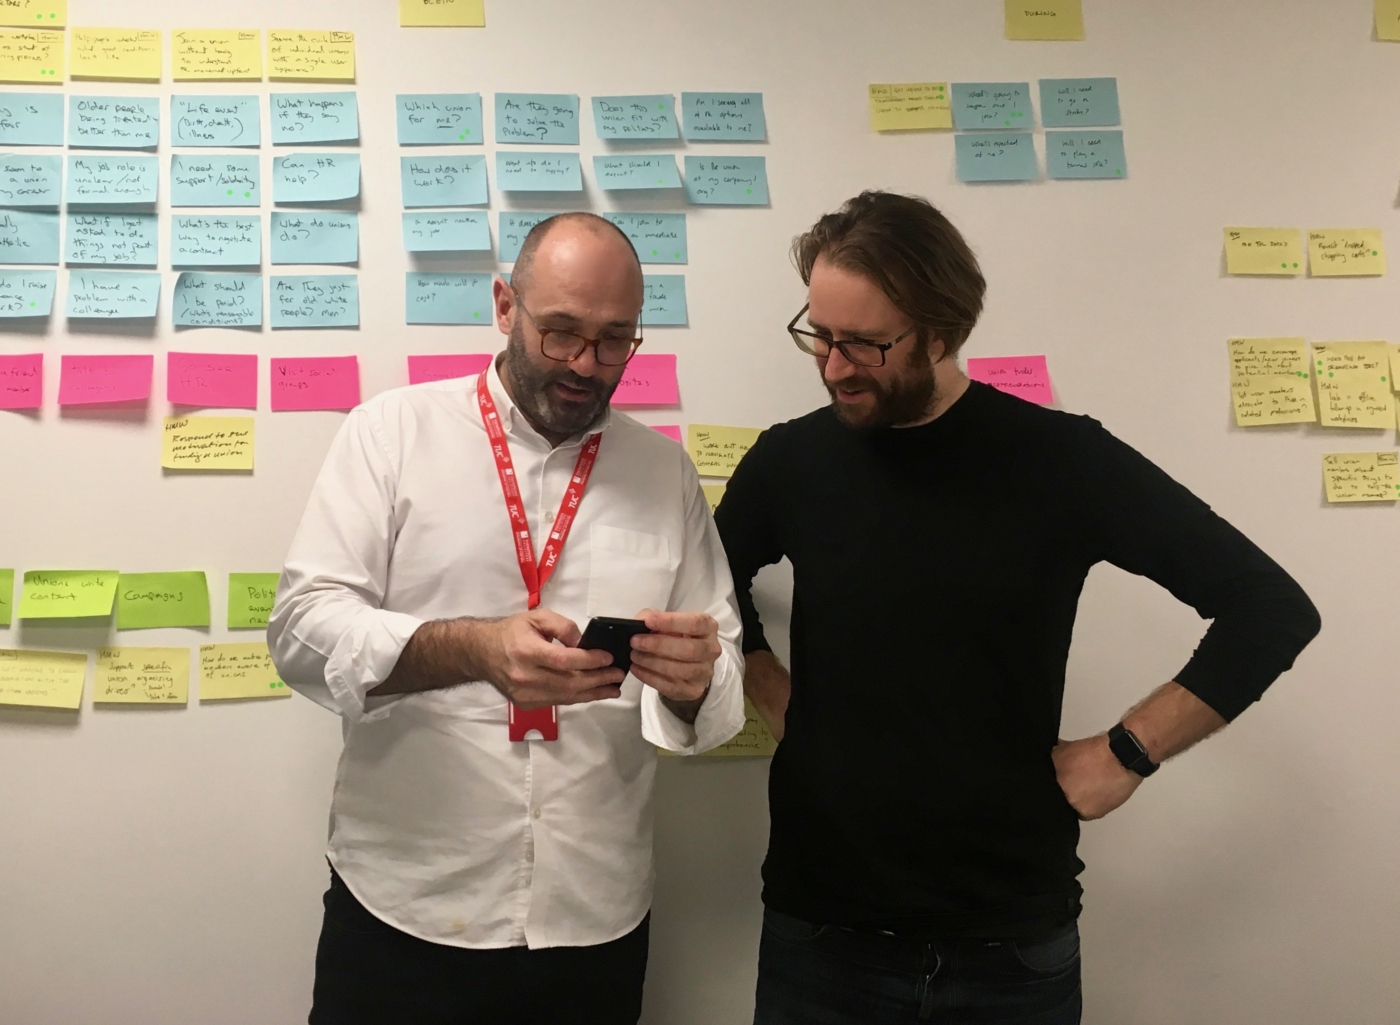 Richard and Carl, discussing the prototype